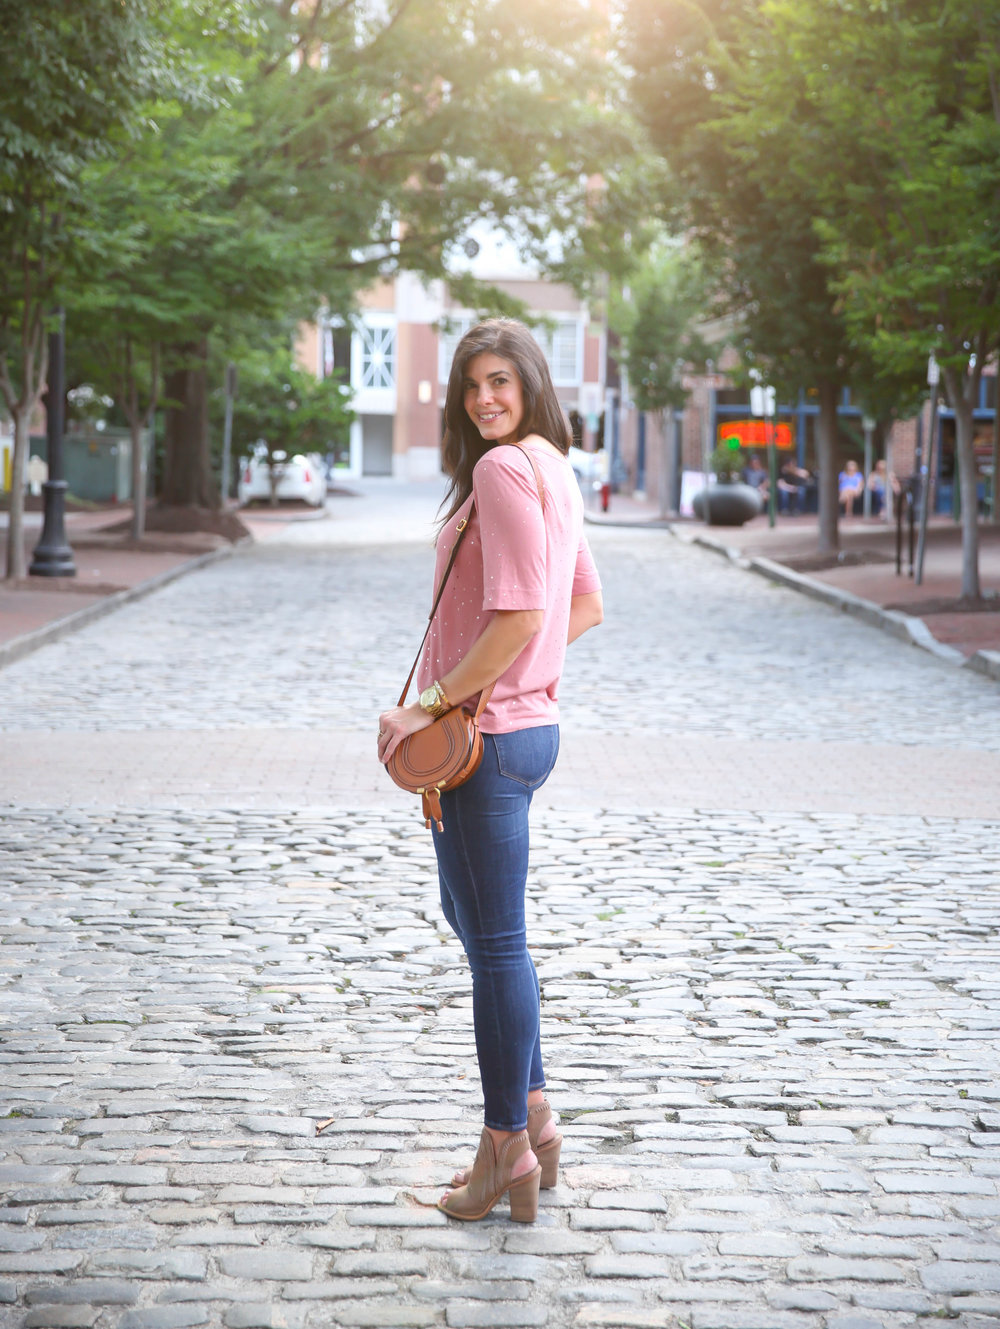 blush-shirt-denim-booties-early-fall-style-inspiration-lauren-schwaiger-blog.jpg